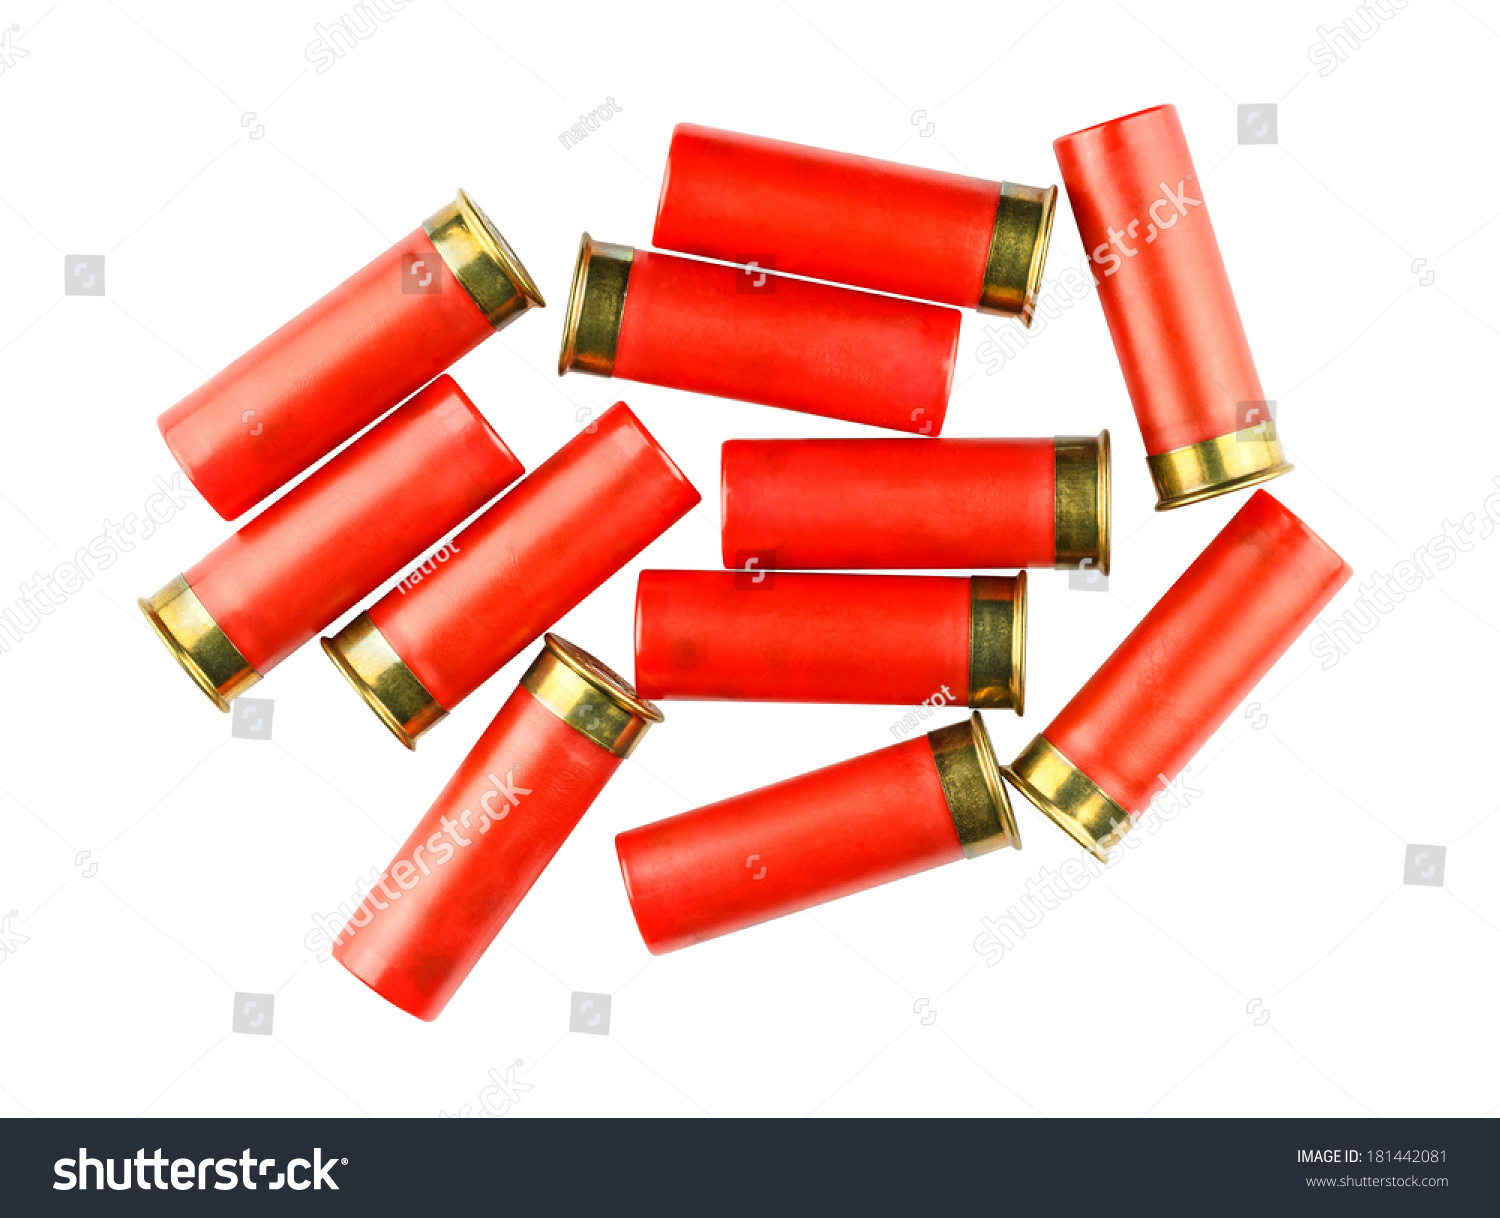 shotgun shells background - photo #21